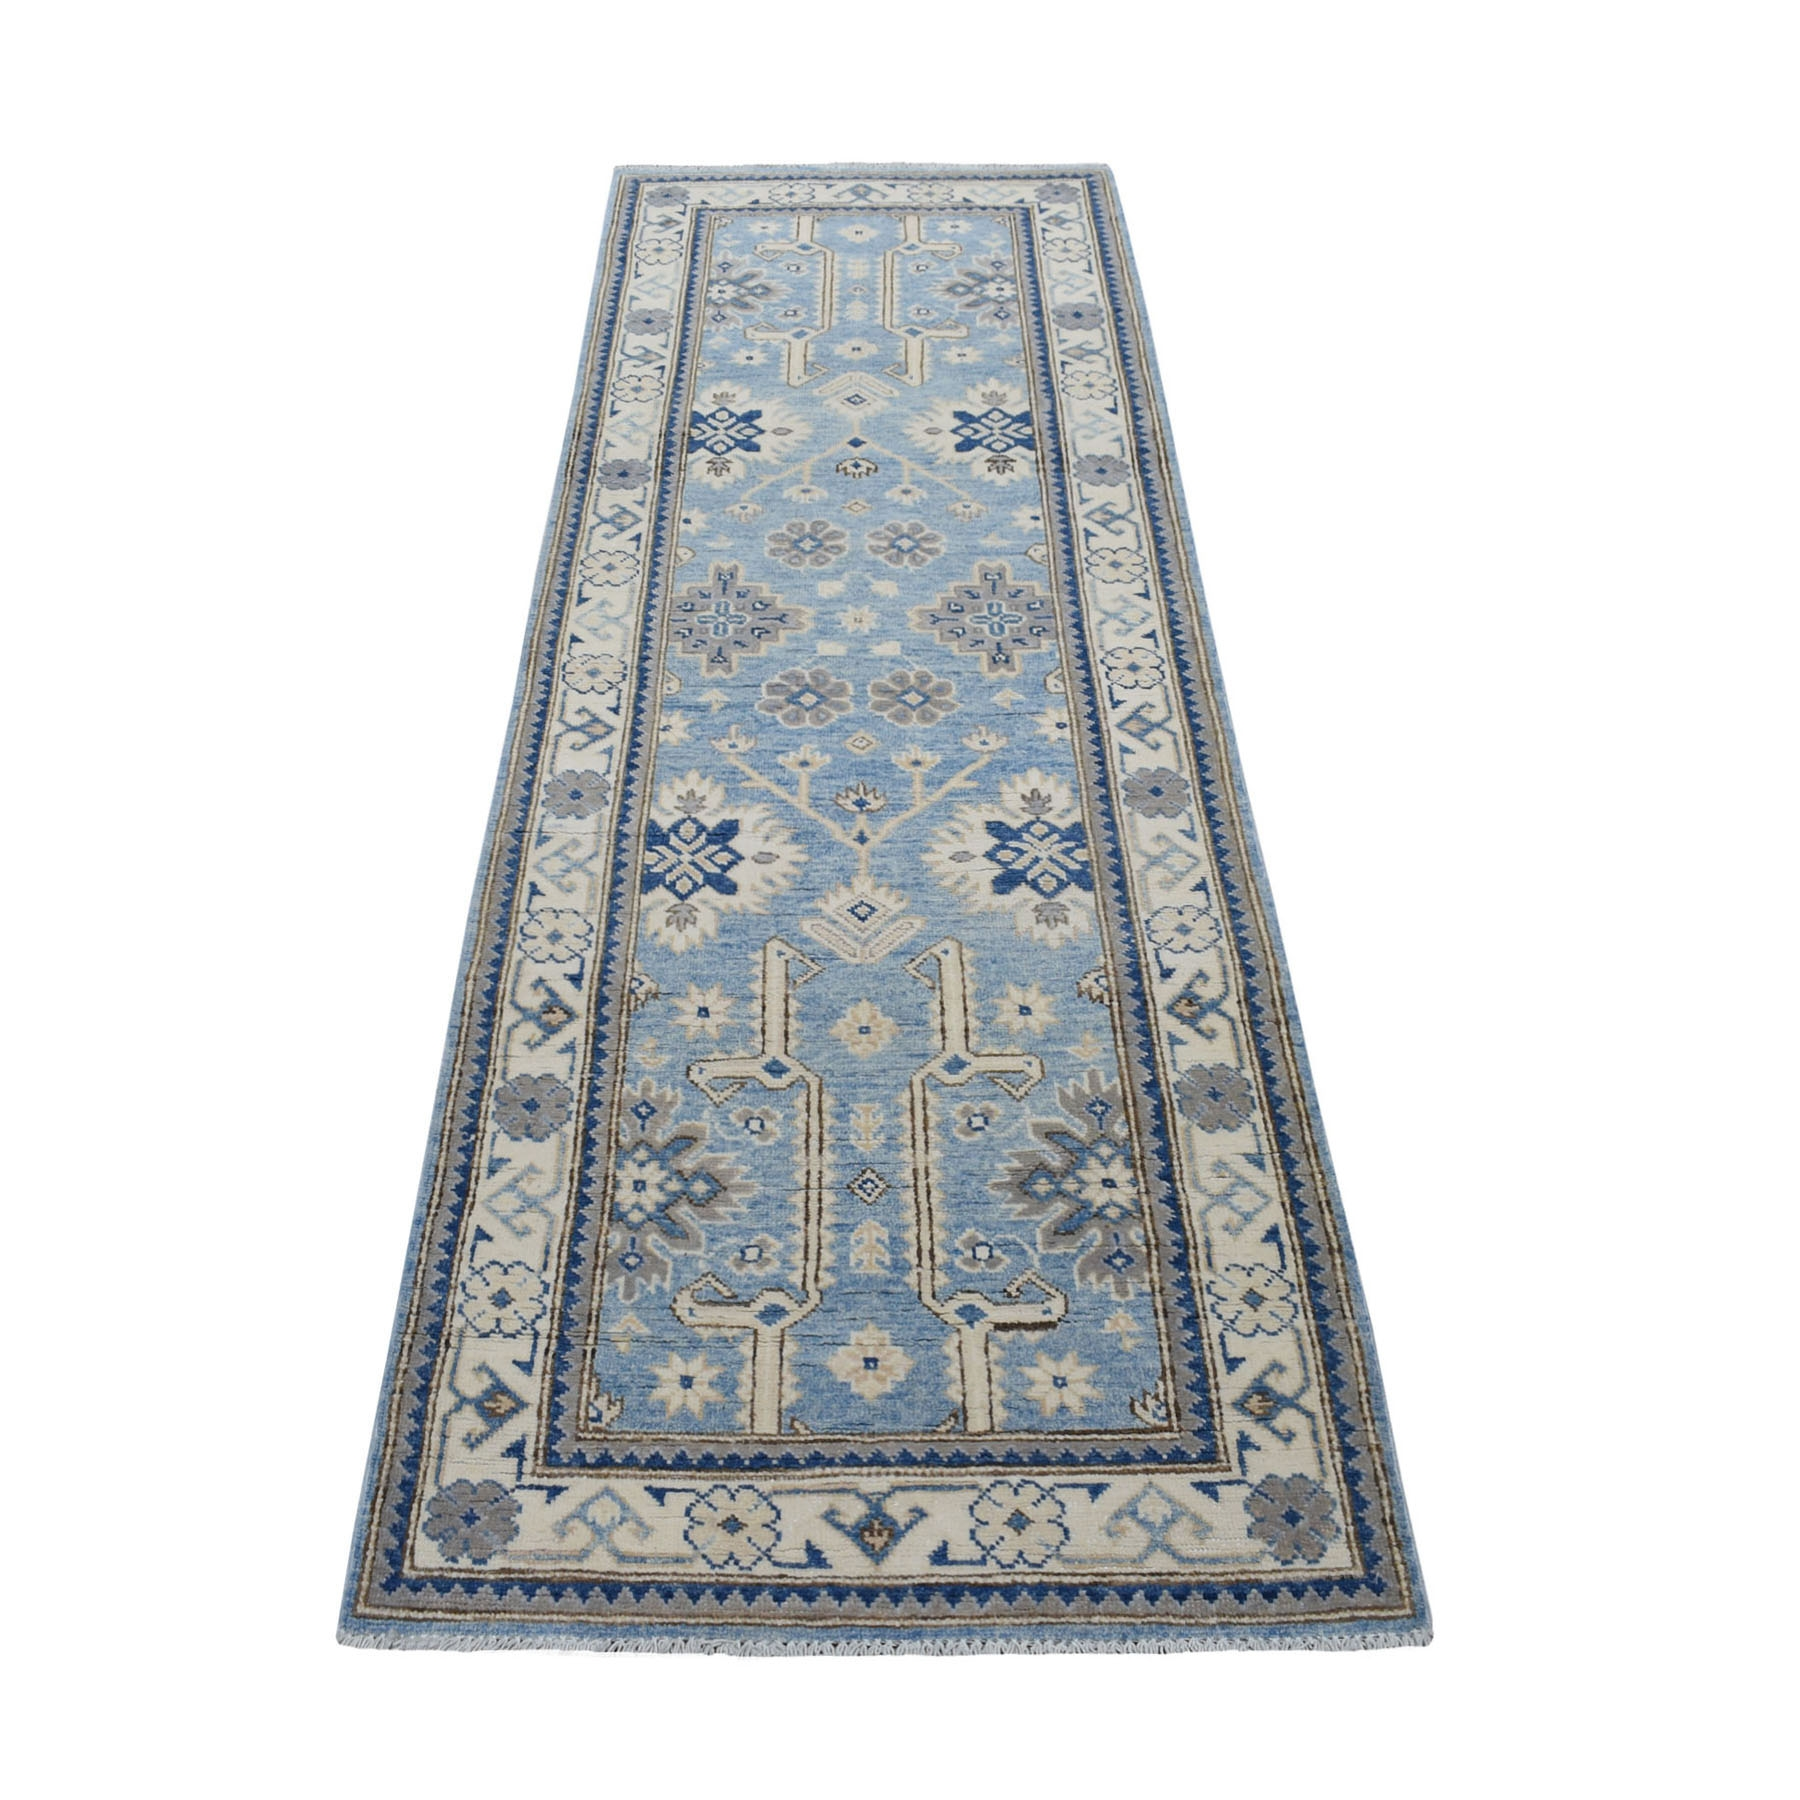 "2'6""x7'8"" Blue Vintage Look Kazak Organic Wool Tribal Design Hand Knotted Runner Oriental Rug"